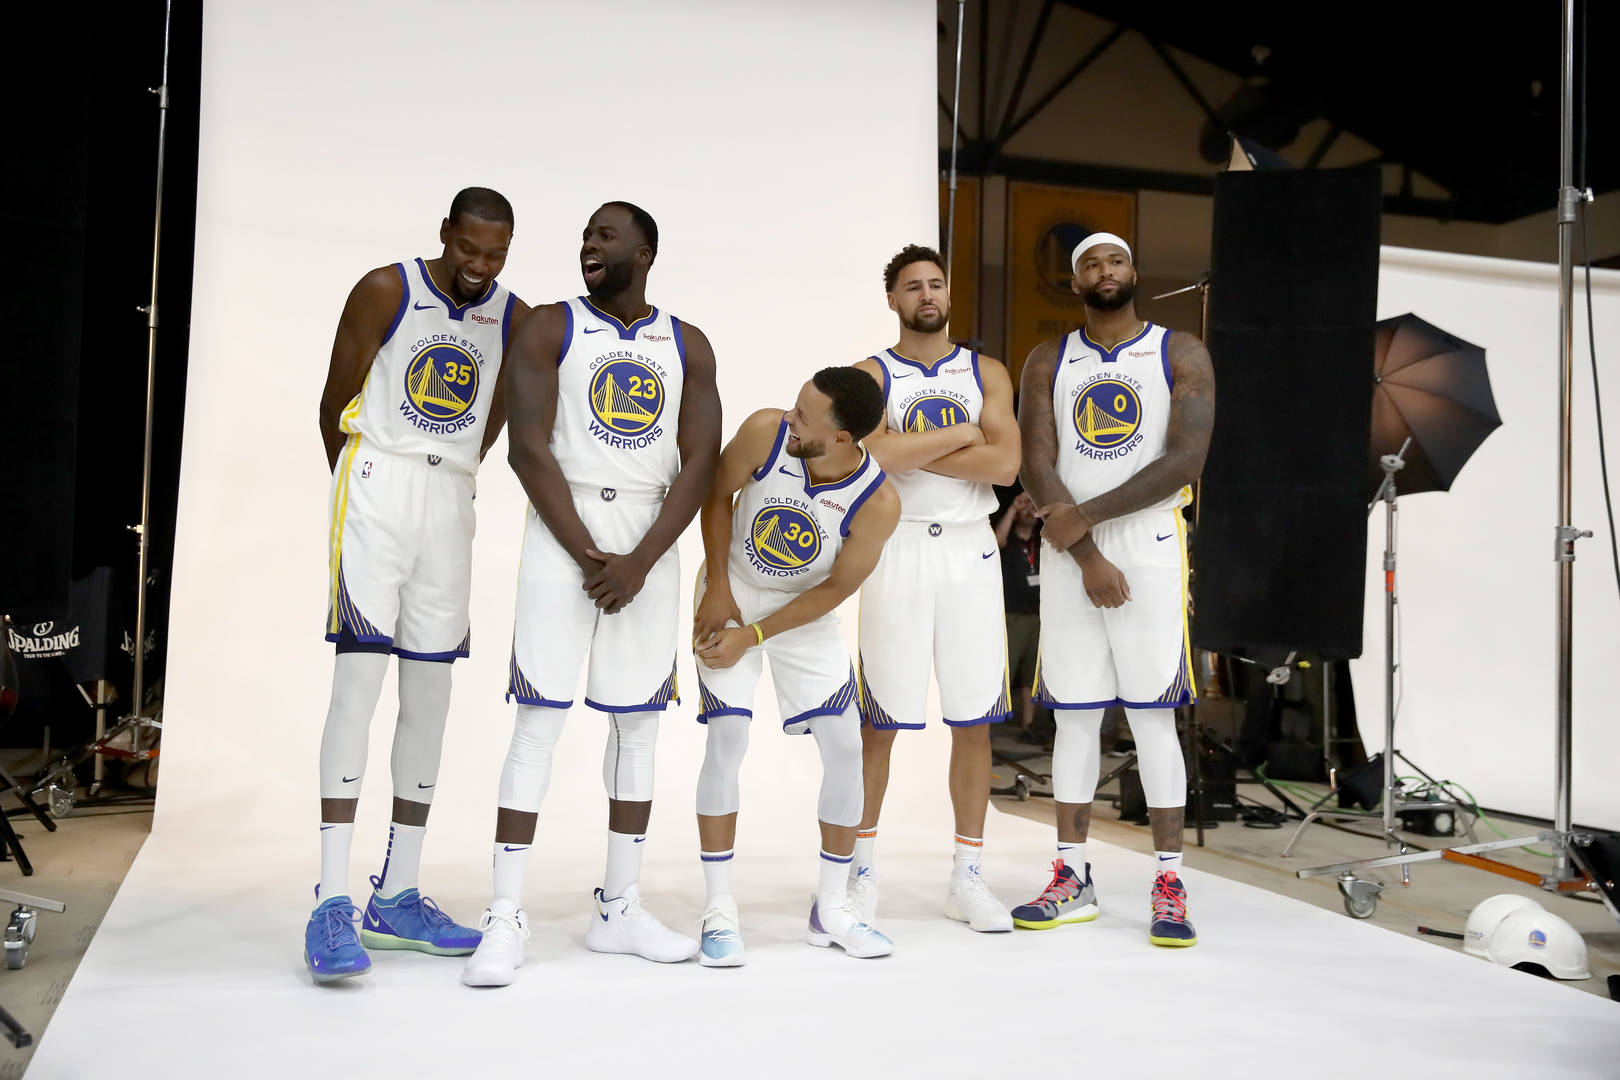 Cousins Isn't To Blame For Warriors Struggles, Says Draymond Green